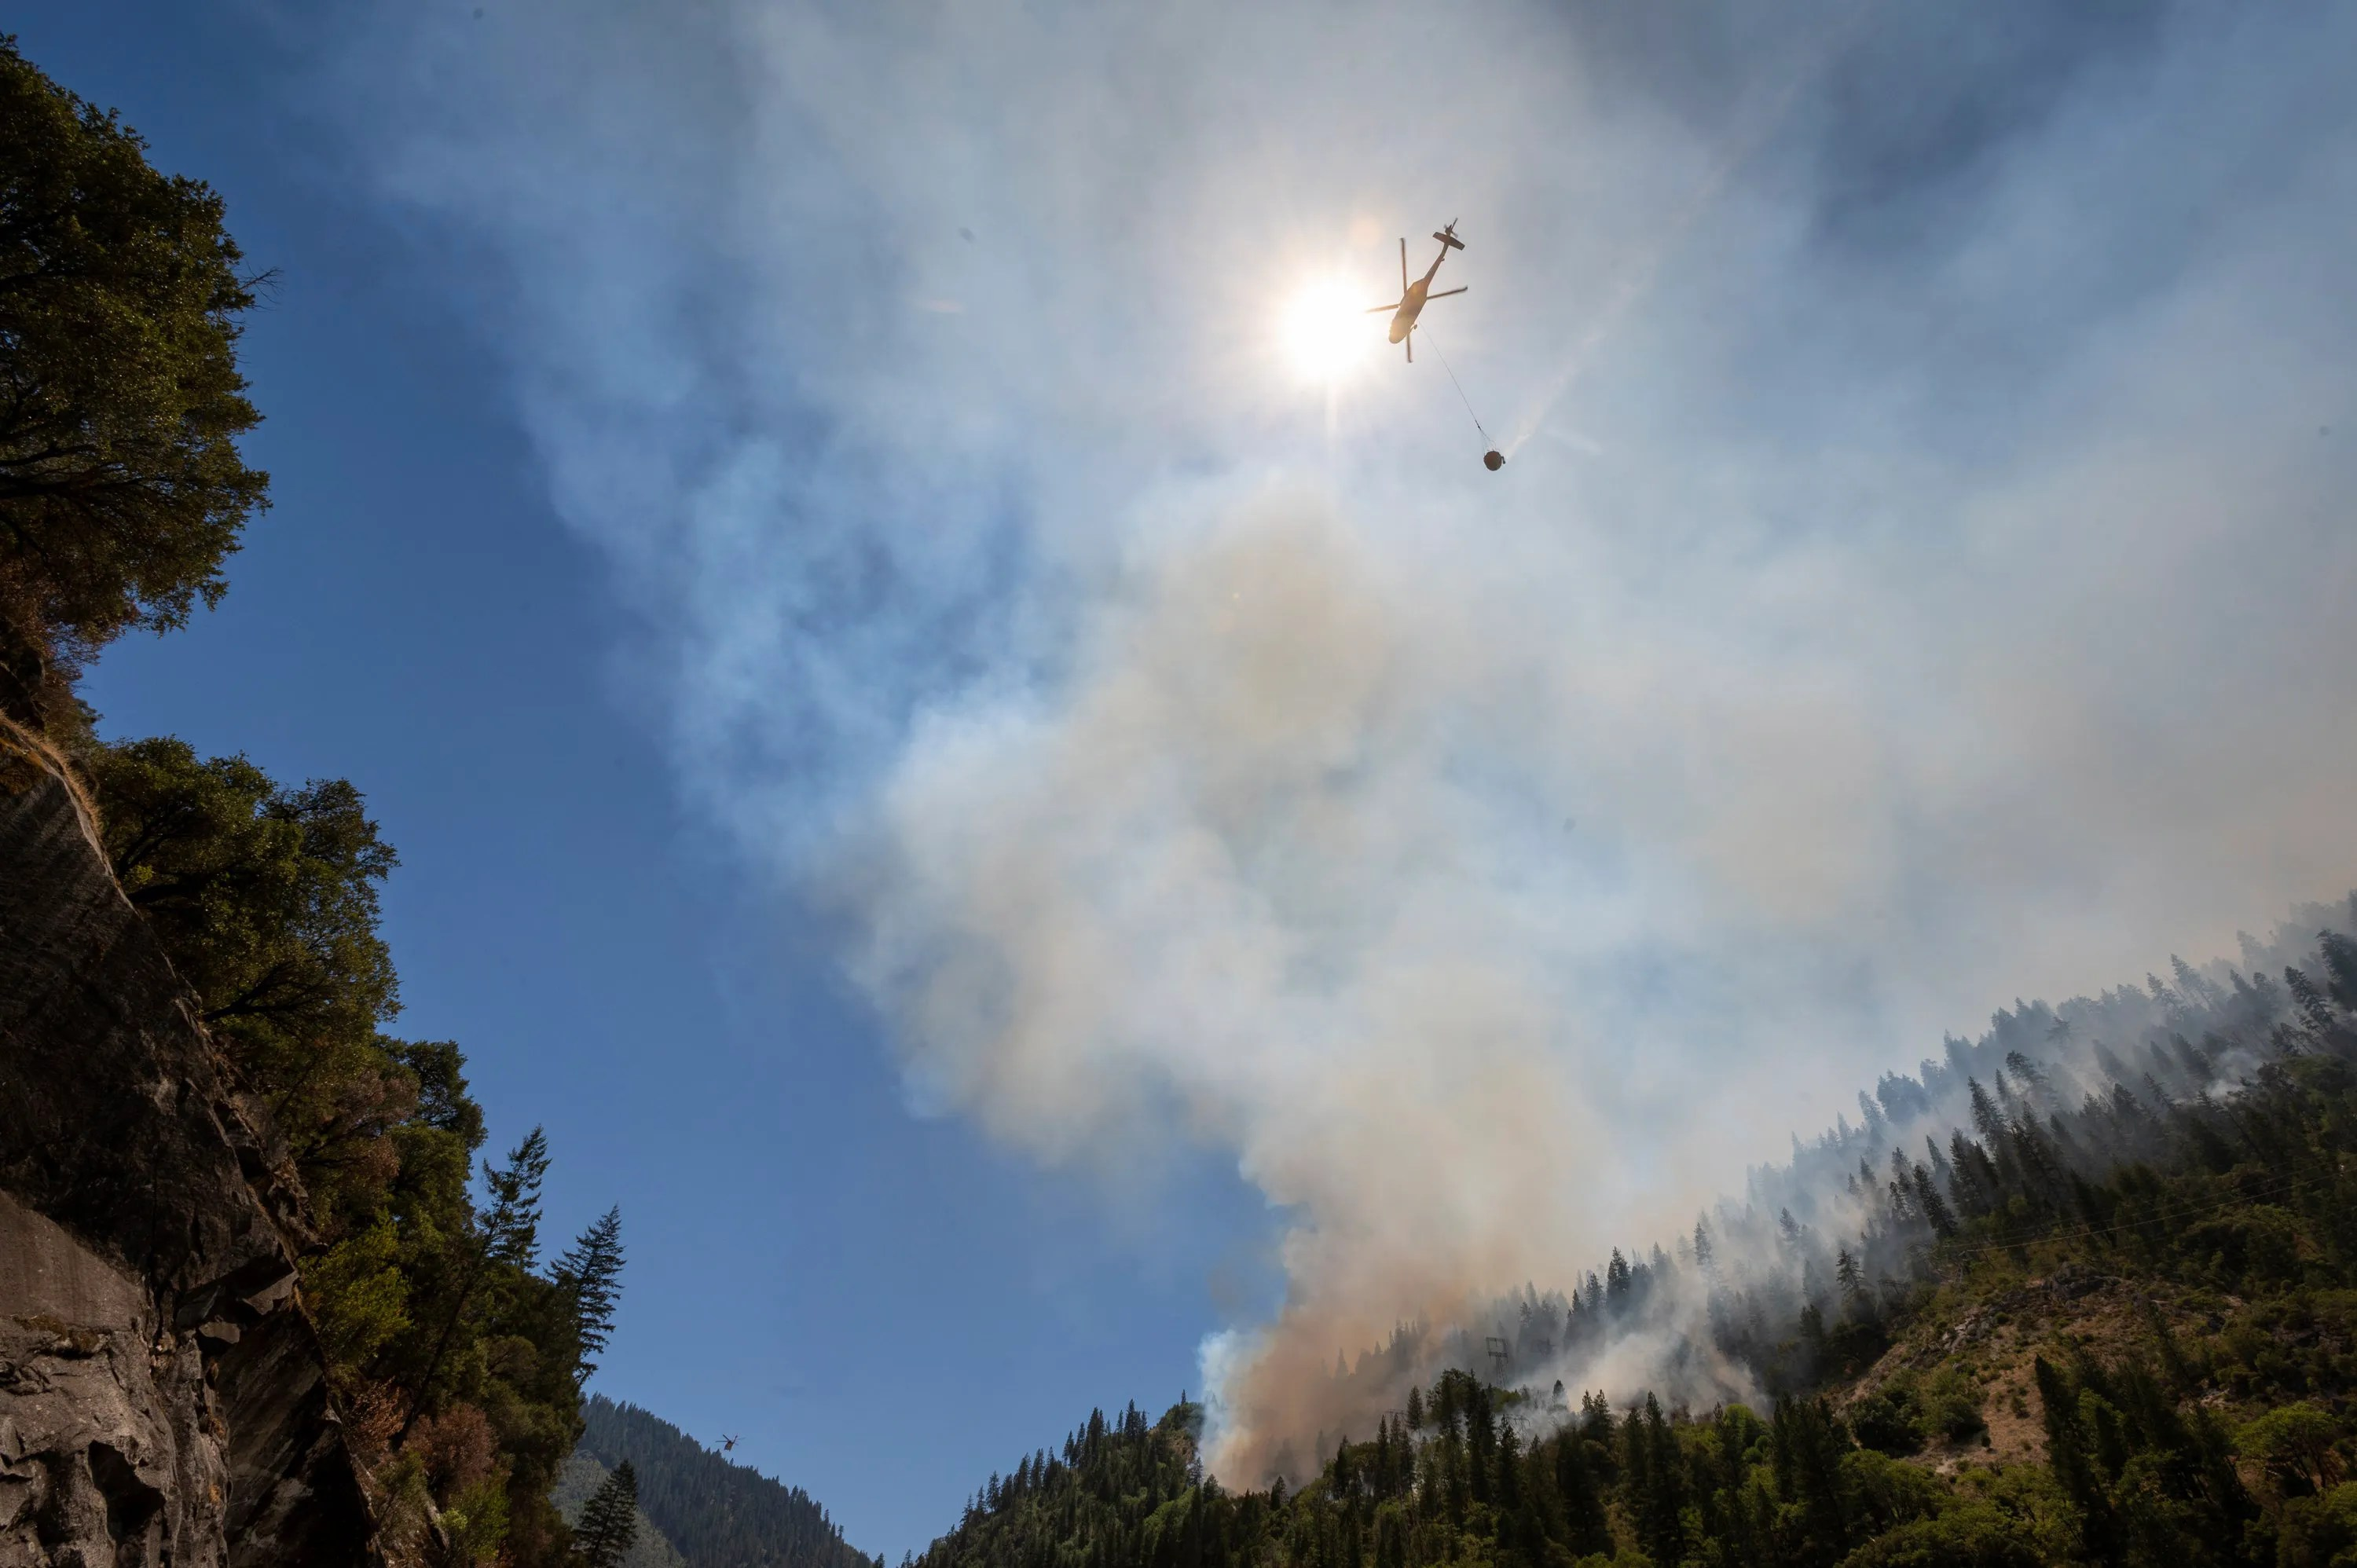 Helicopters drop water to battle the Dixie Fire on Highway 70 in the Feather River Canyon on Wednesday, July 14, 2021, in Plumas County. The Dixie Fire is burning in California's Butte and Plumas counties, not far from where the 2018 Camp Fire killed 85 people.